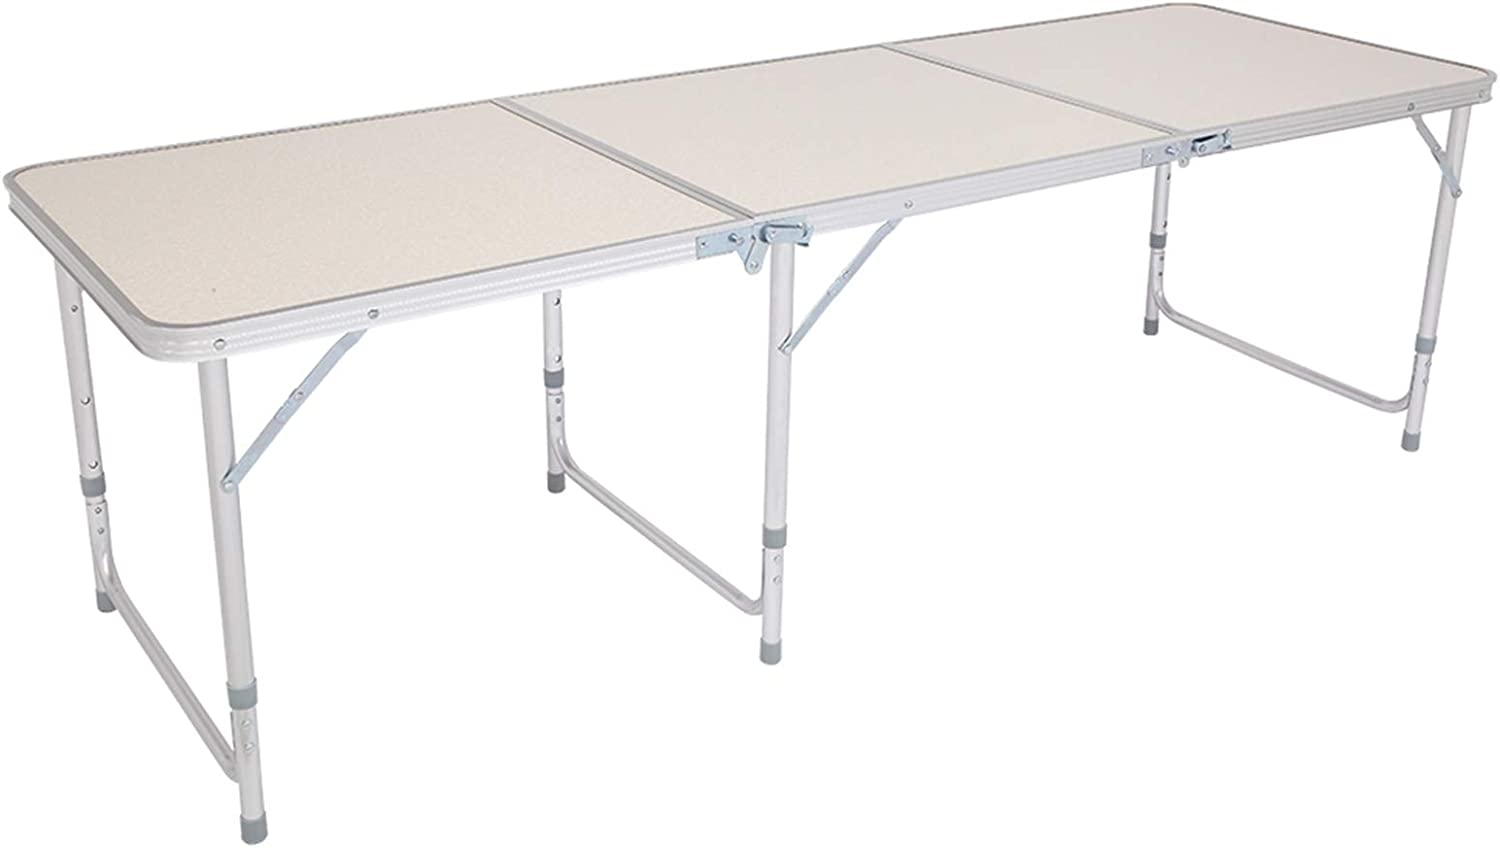 Mushugu Cheap mail order specialty store 70.87 online shopping x 23.62 27.56in Use Folding Aluminum Home Alloy